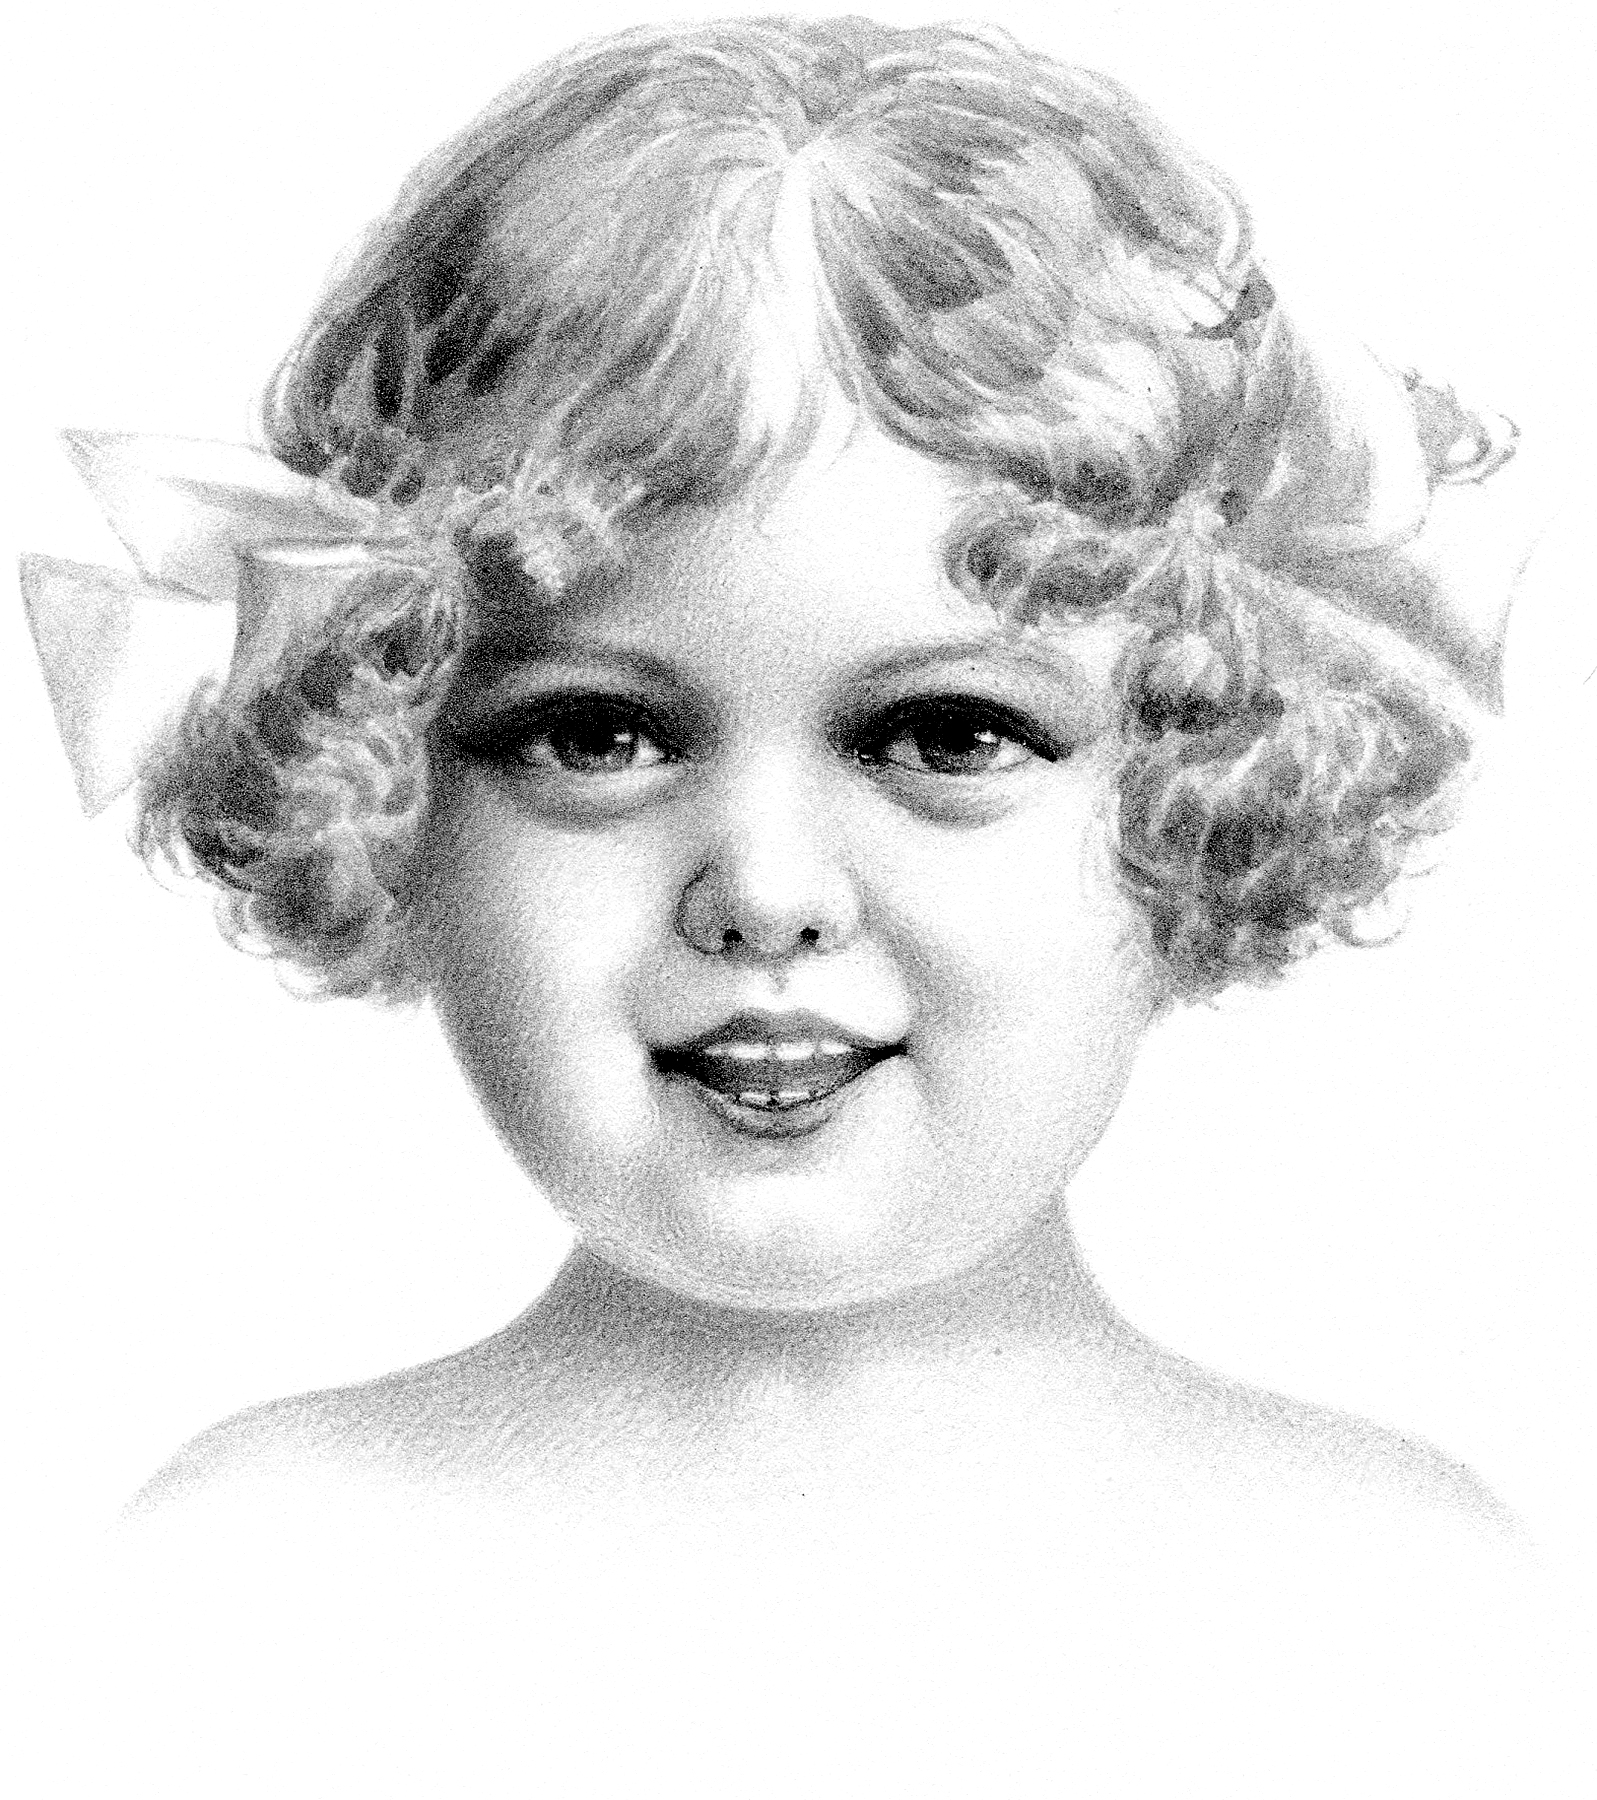 How cute is this vintage pencil portrait of sweet girl this pencil sketch of a cute little girl with a big smile and bright eyes is just adorable